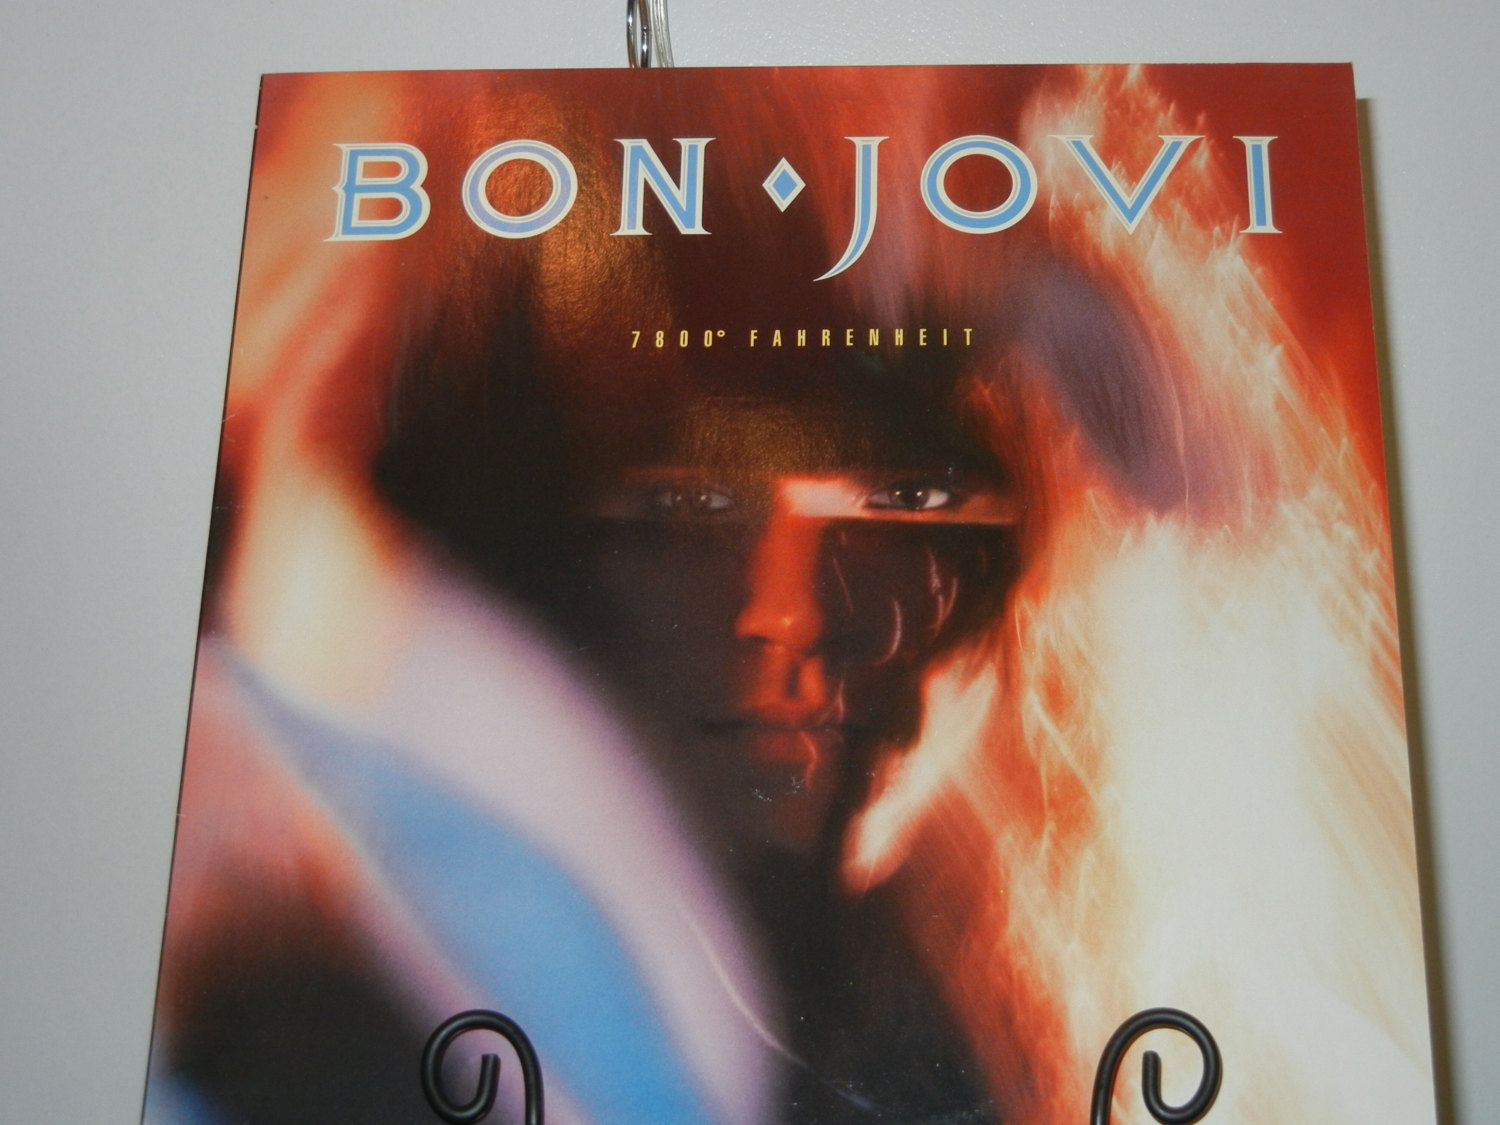 Bon Jovi 7800 Fahrenheit Mtv I Love The 80 39 S Vintage Vinyl Album Only Lonely In And Out Of Love The Price Of Love Jon Bon Jov Bon Jovi Jon Bon Jovi